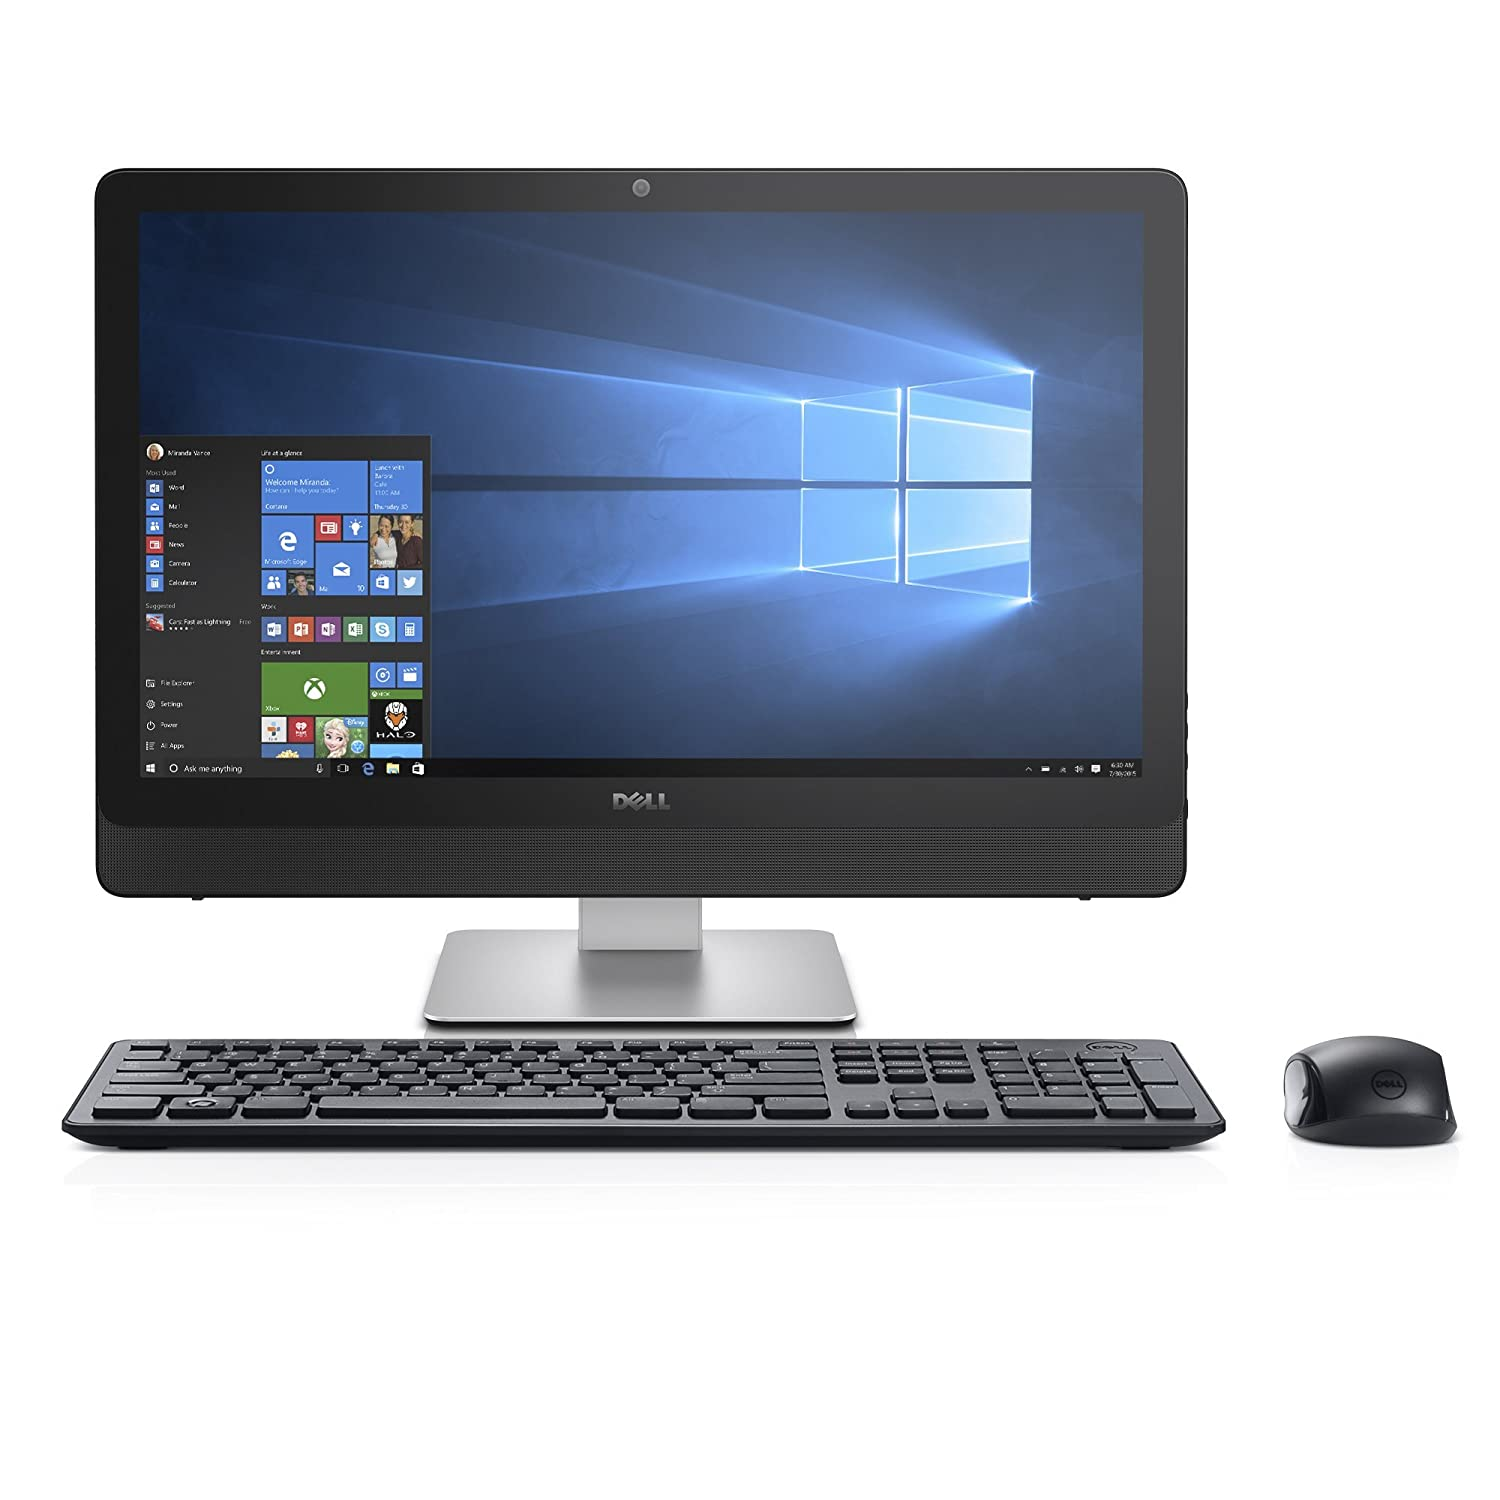 Desktop Computer Dell Inspiron 24 3000 Series All-In-One (Intel Core i3, 8 GB RAM, 500 GB HDD)